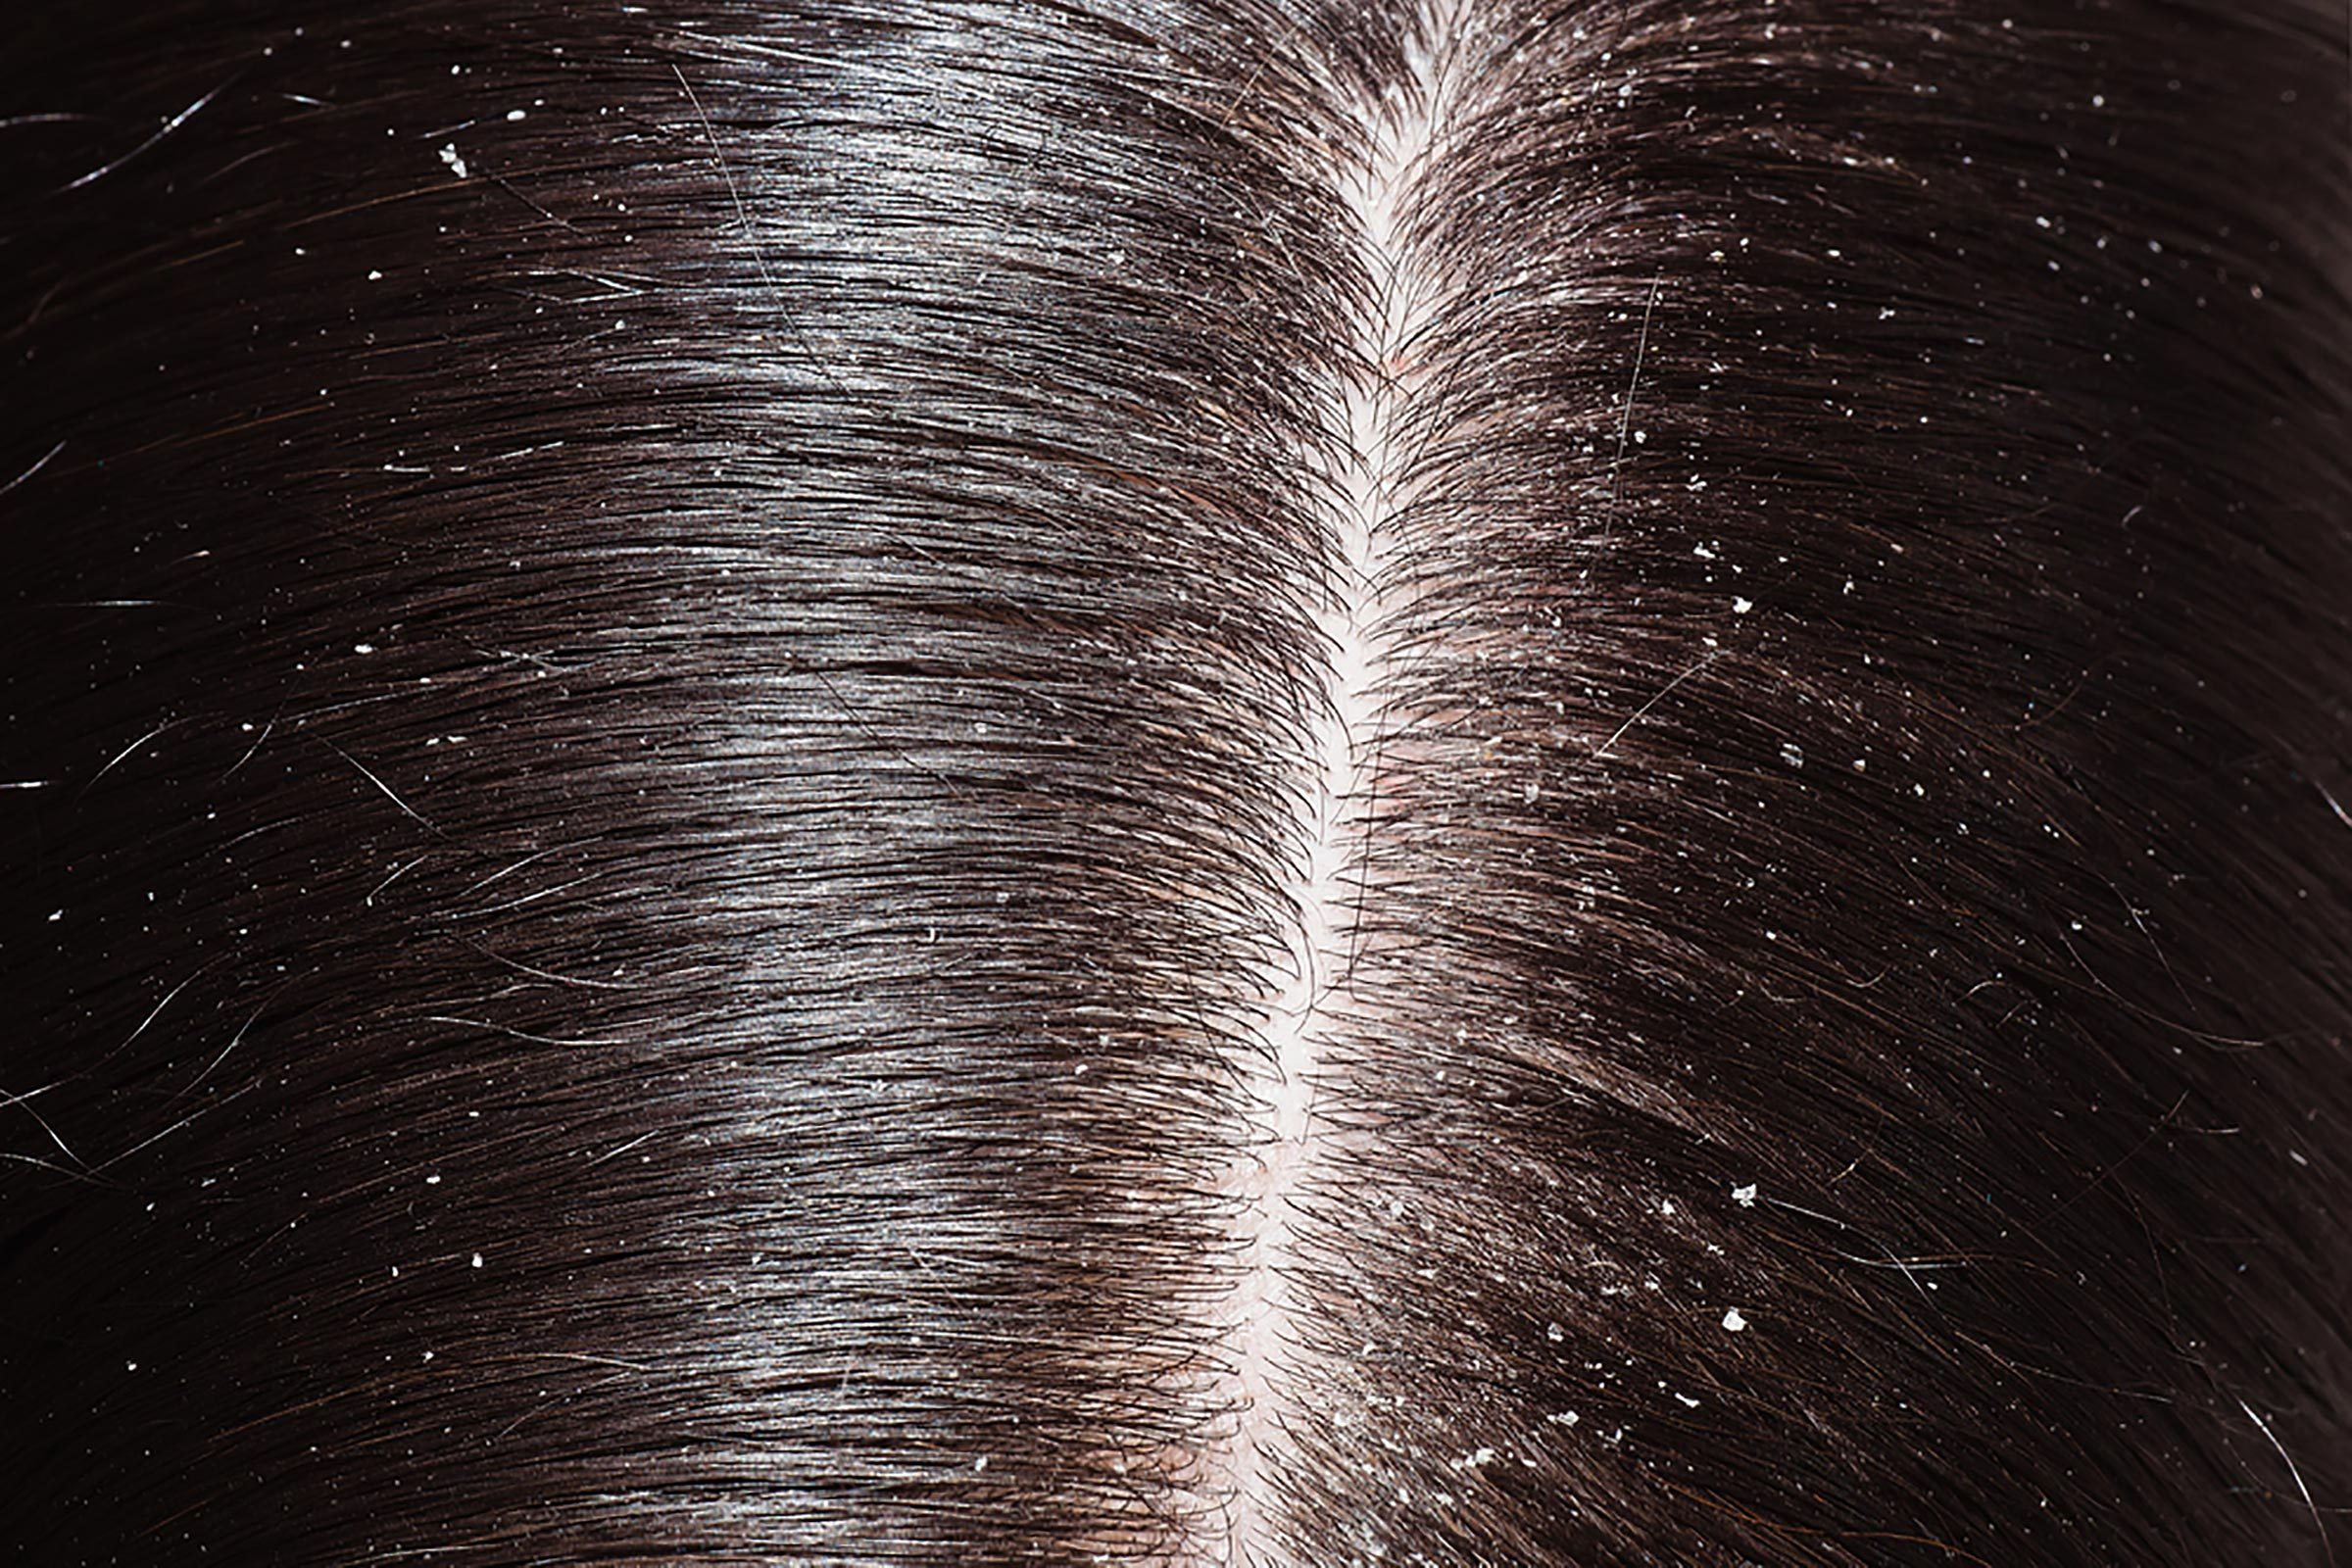 Dandruff along someone's hair part line.